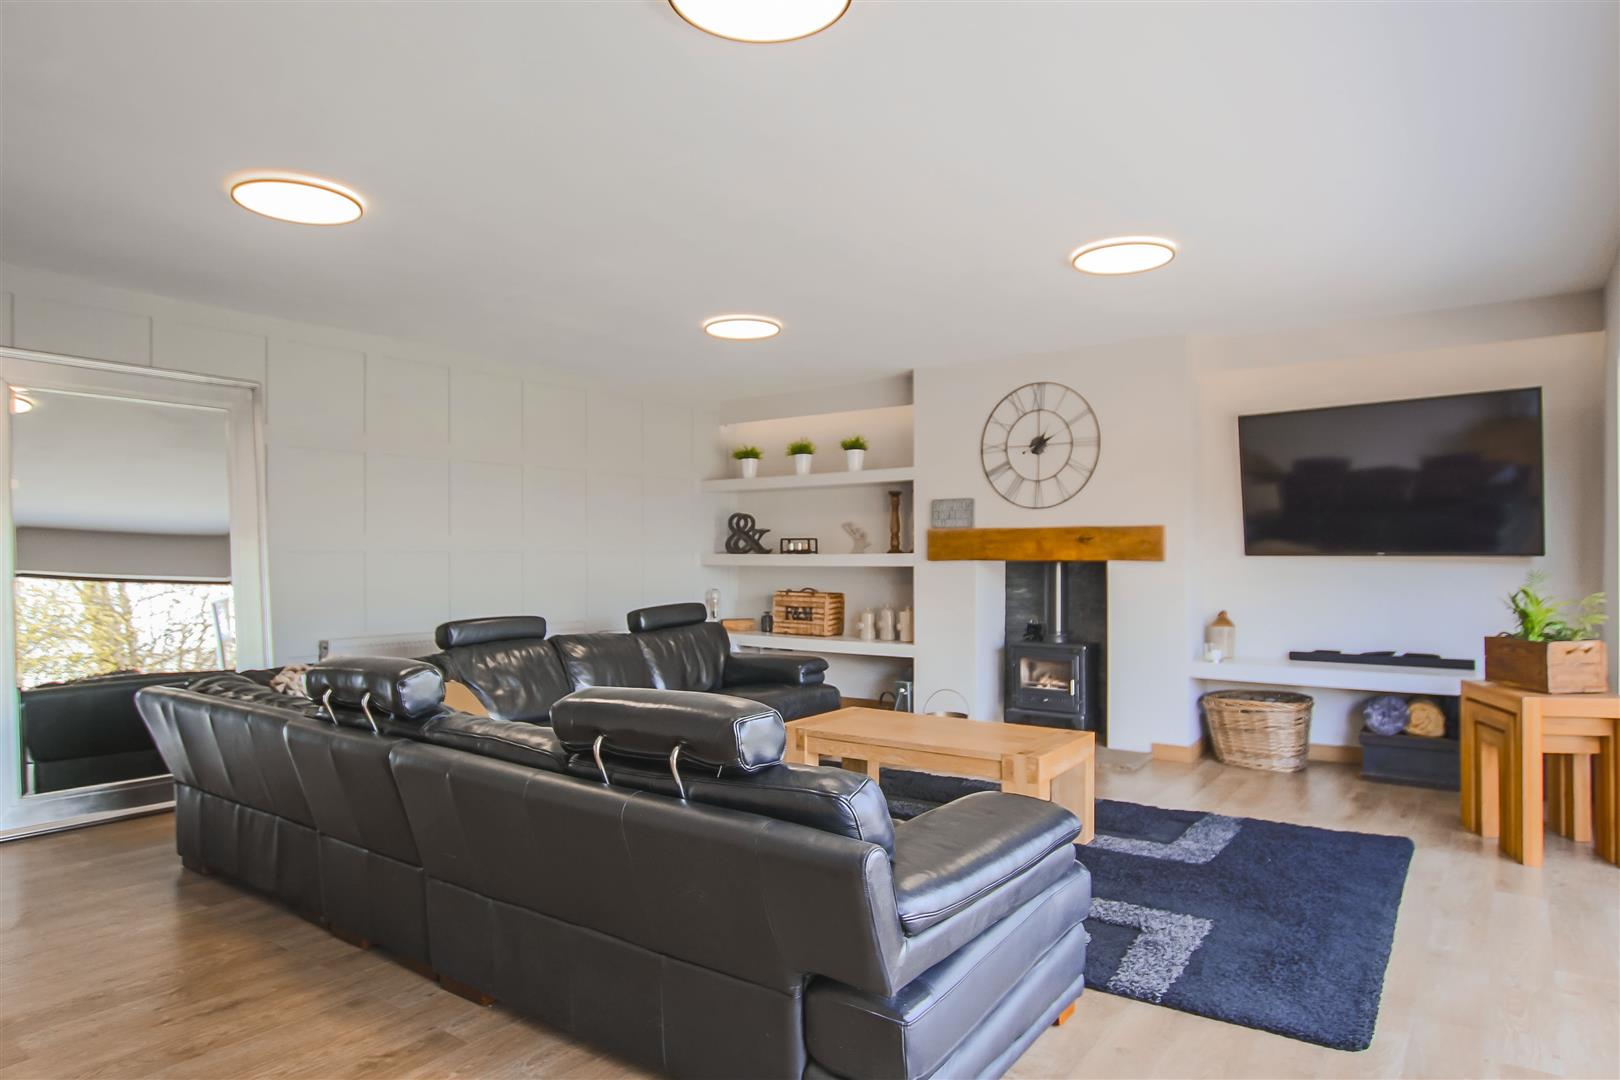 6 Bedroom House For Sale - Image 18